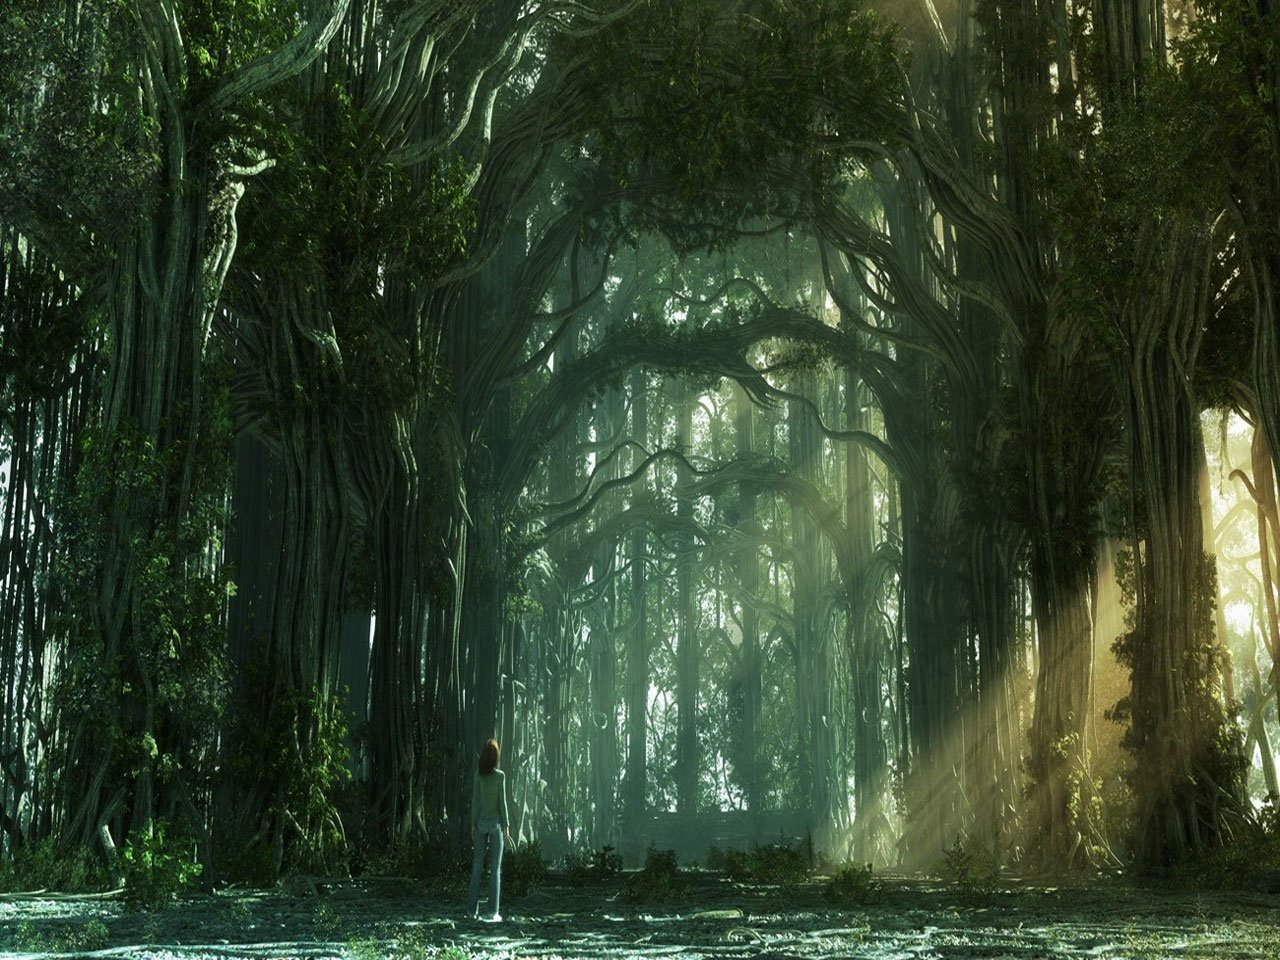 https://www.itl.cat/pngfile/big/15-151834_forest-wallpaper-forest-background-fantasy.jpg